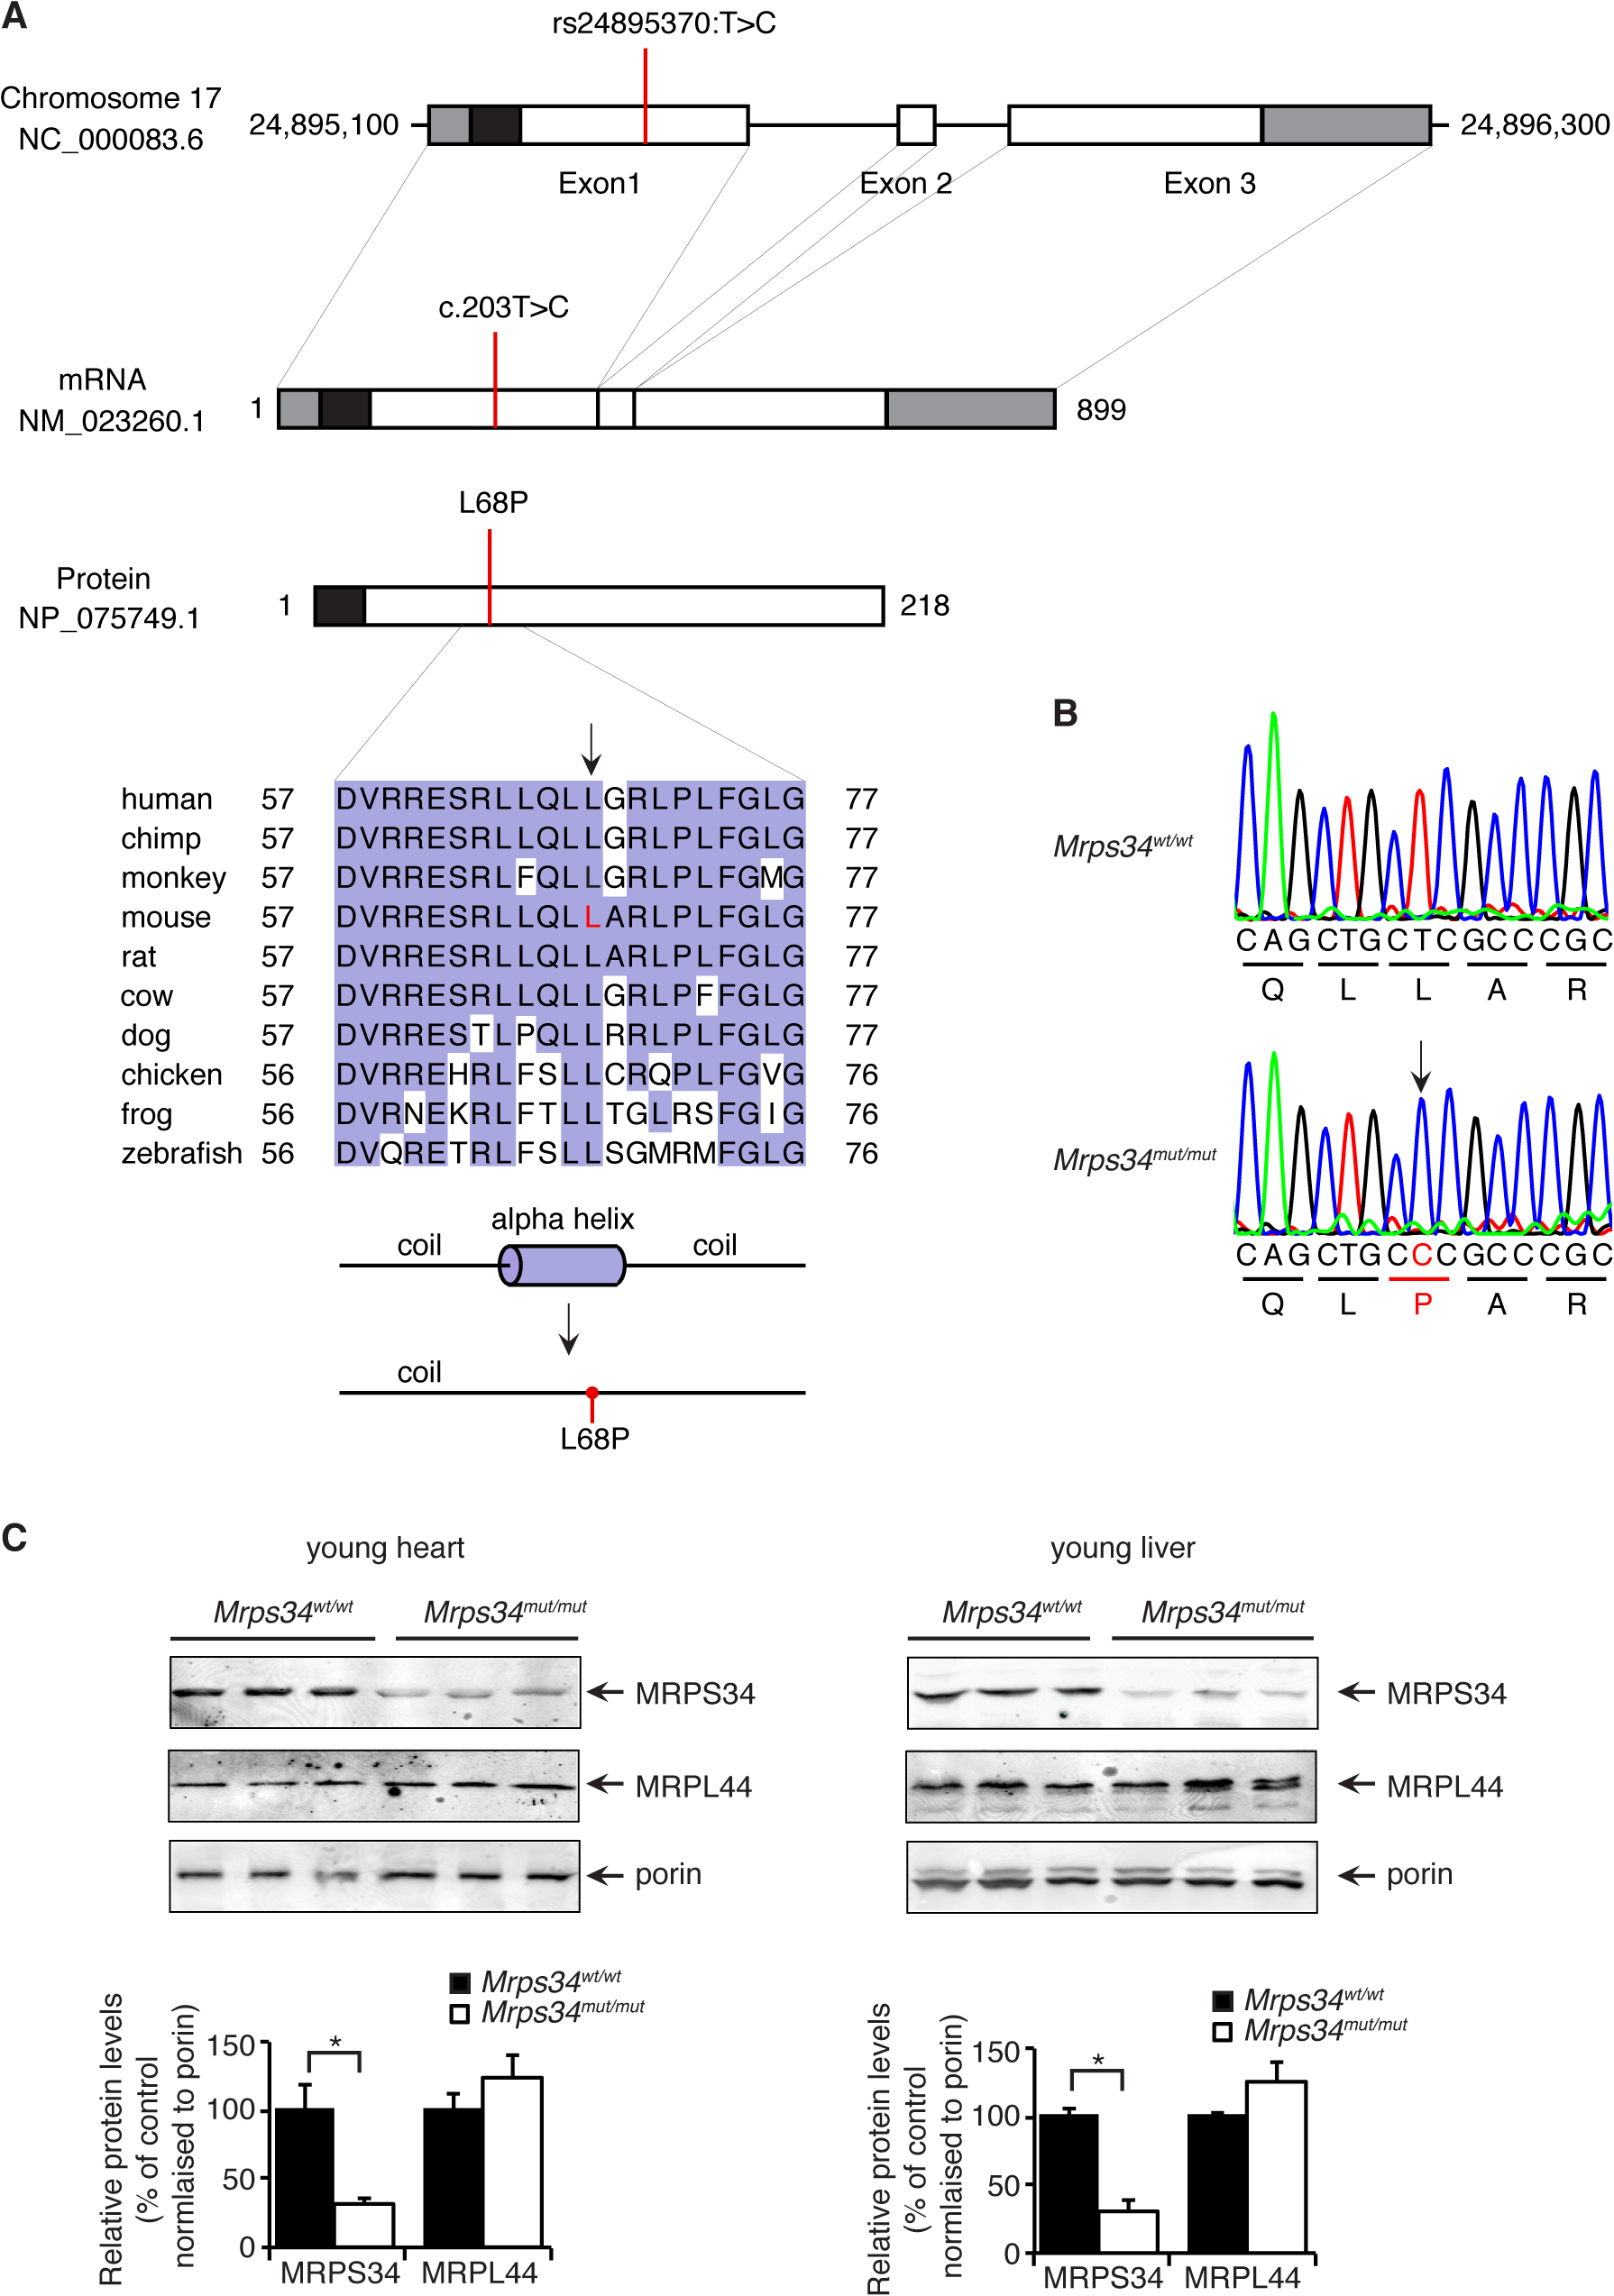 A homozygous point mutation in the <i>Mrps34</i> gene causes a decrease in the MRPS34 protein.